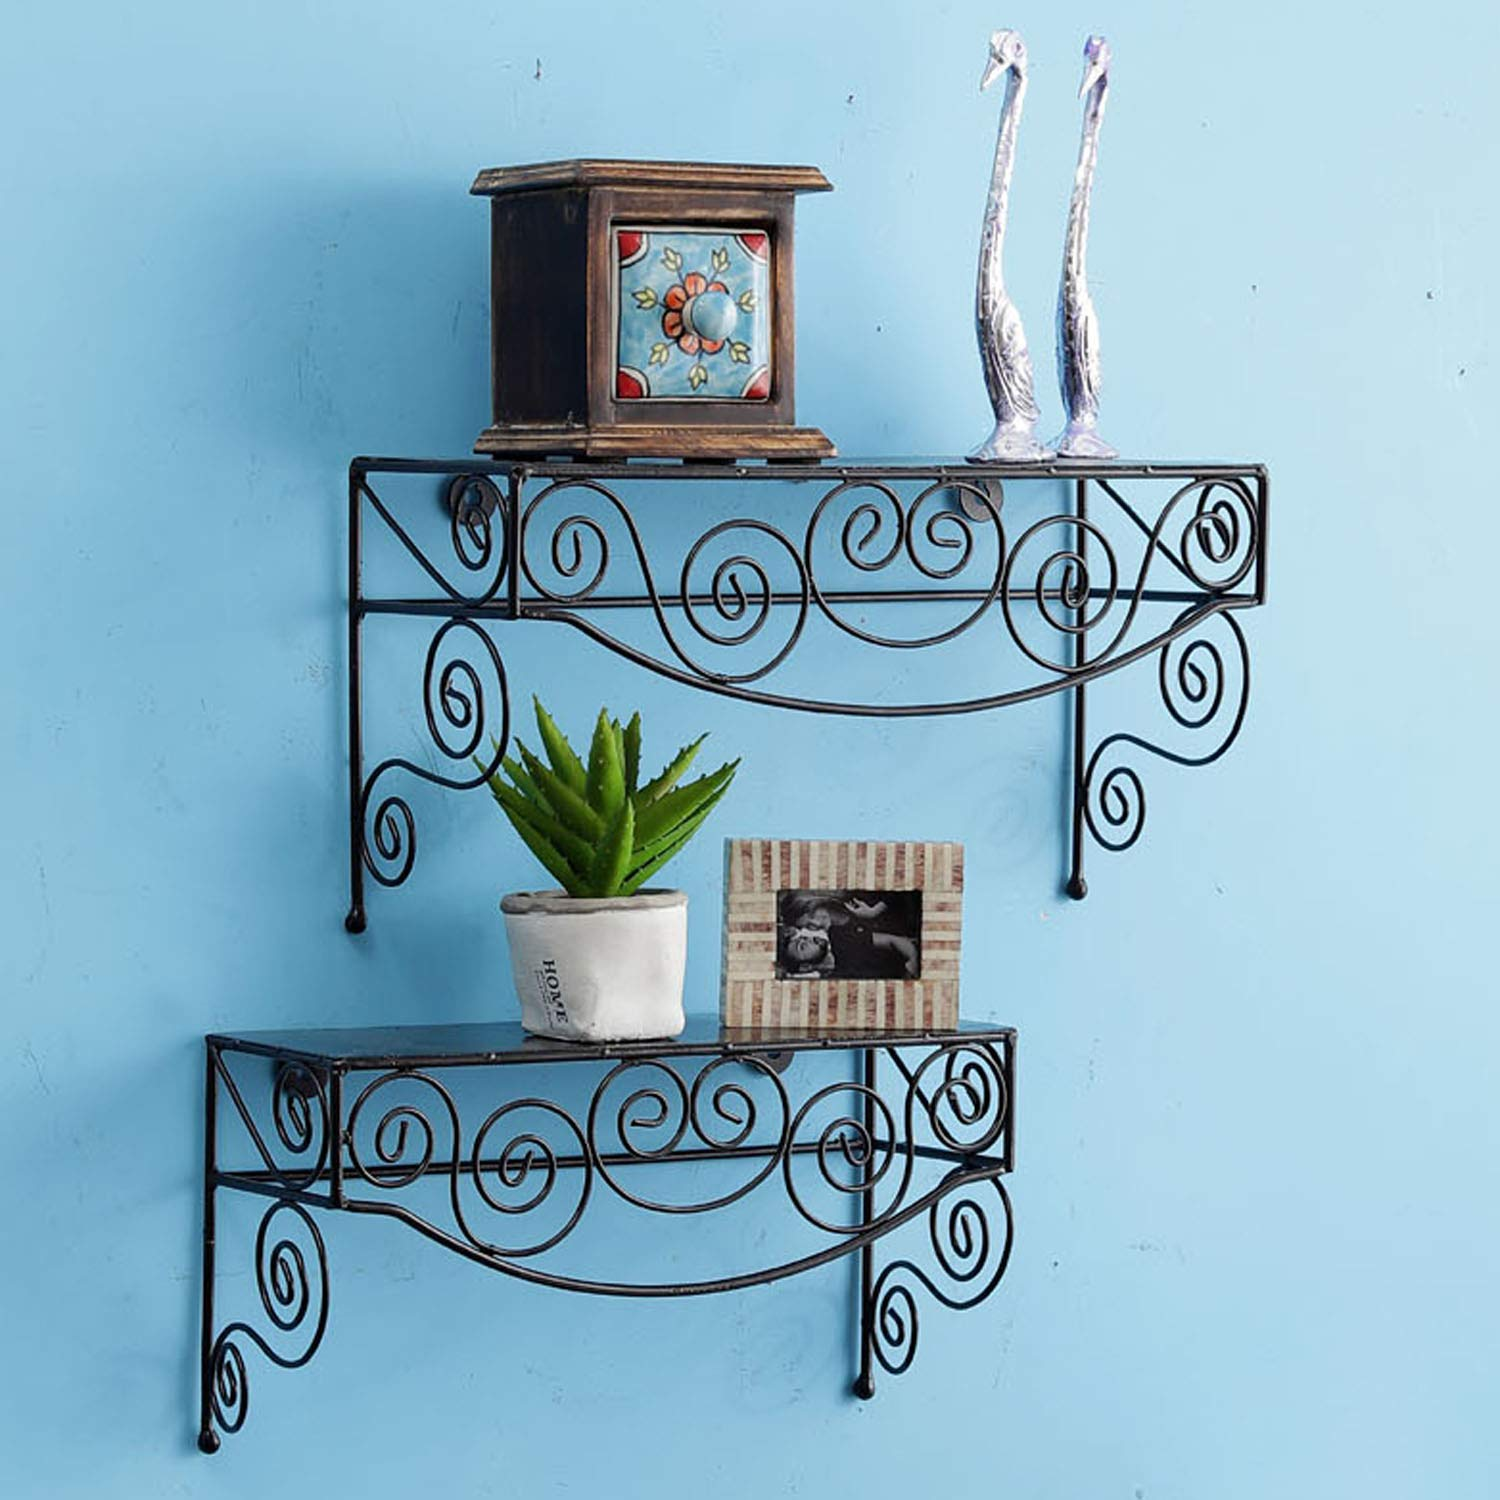 Artesia Mild Steel Decorative Home Decor Wall Shelf For Living Room And Kitchen Amazon In Electronics